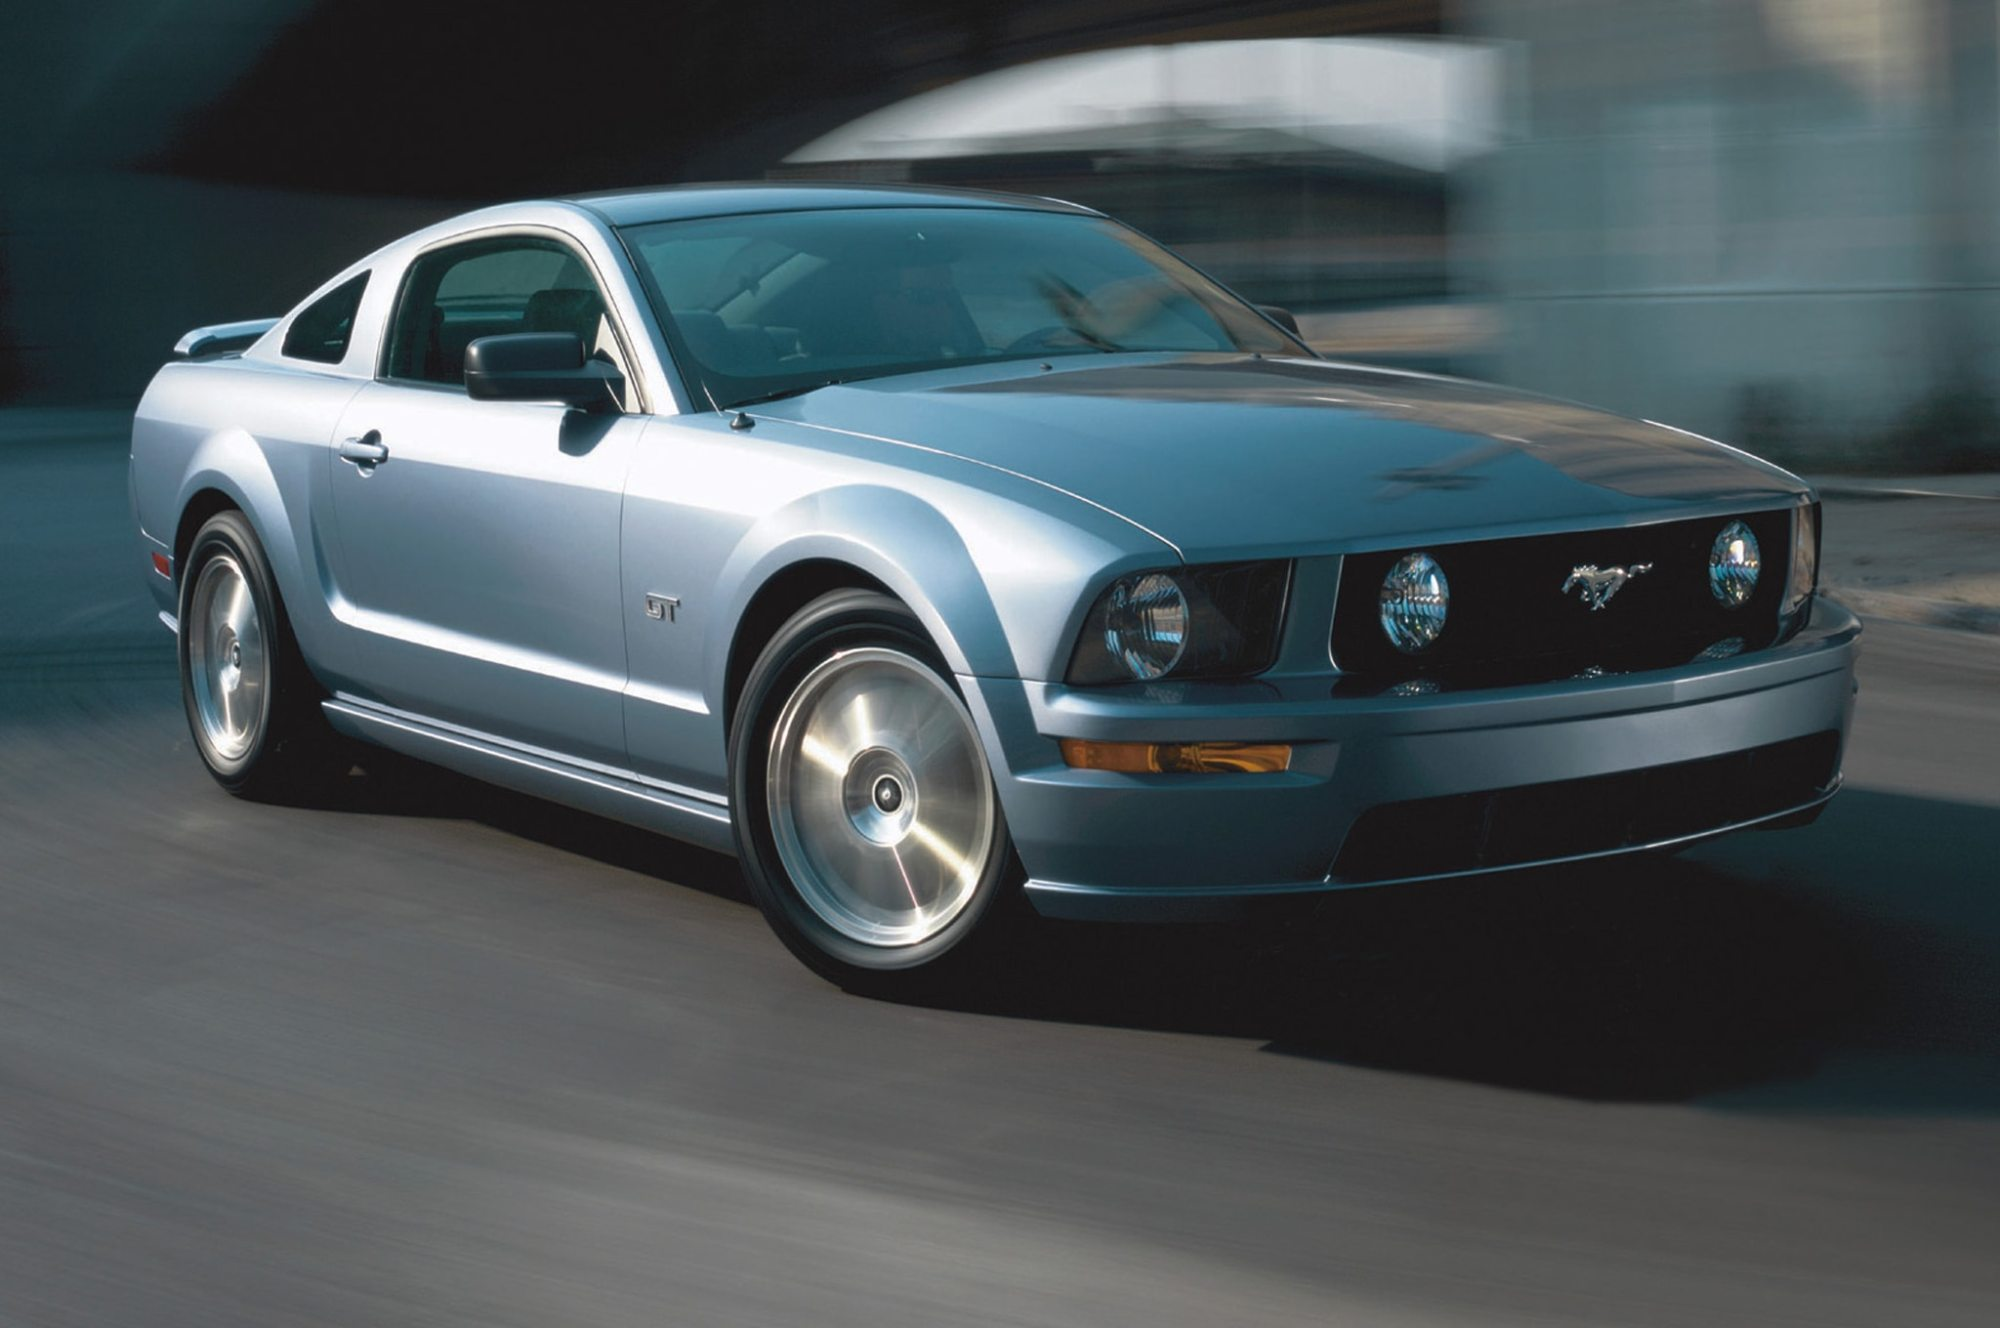 hight resolution of 2005 ford mustang gt coupe silver in motion